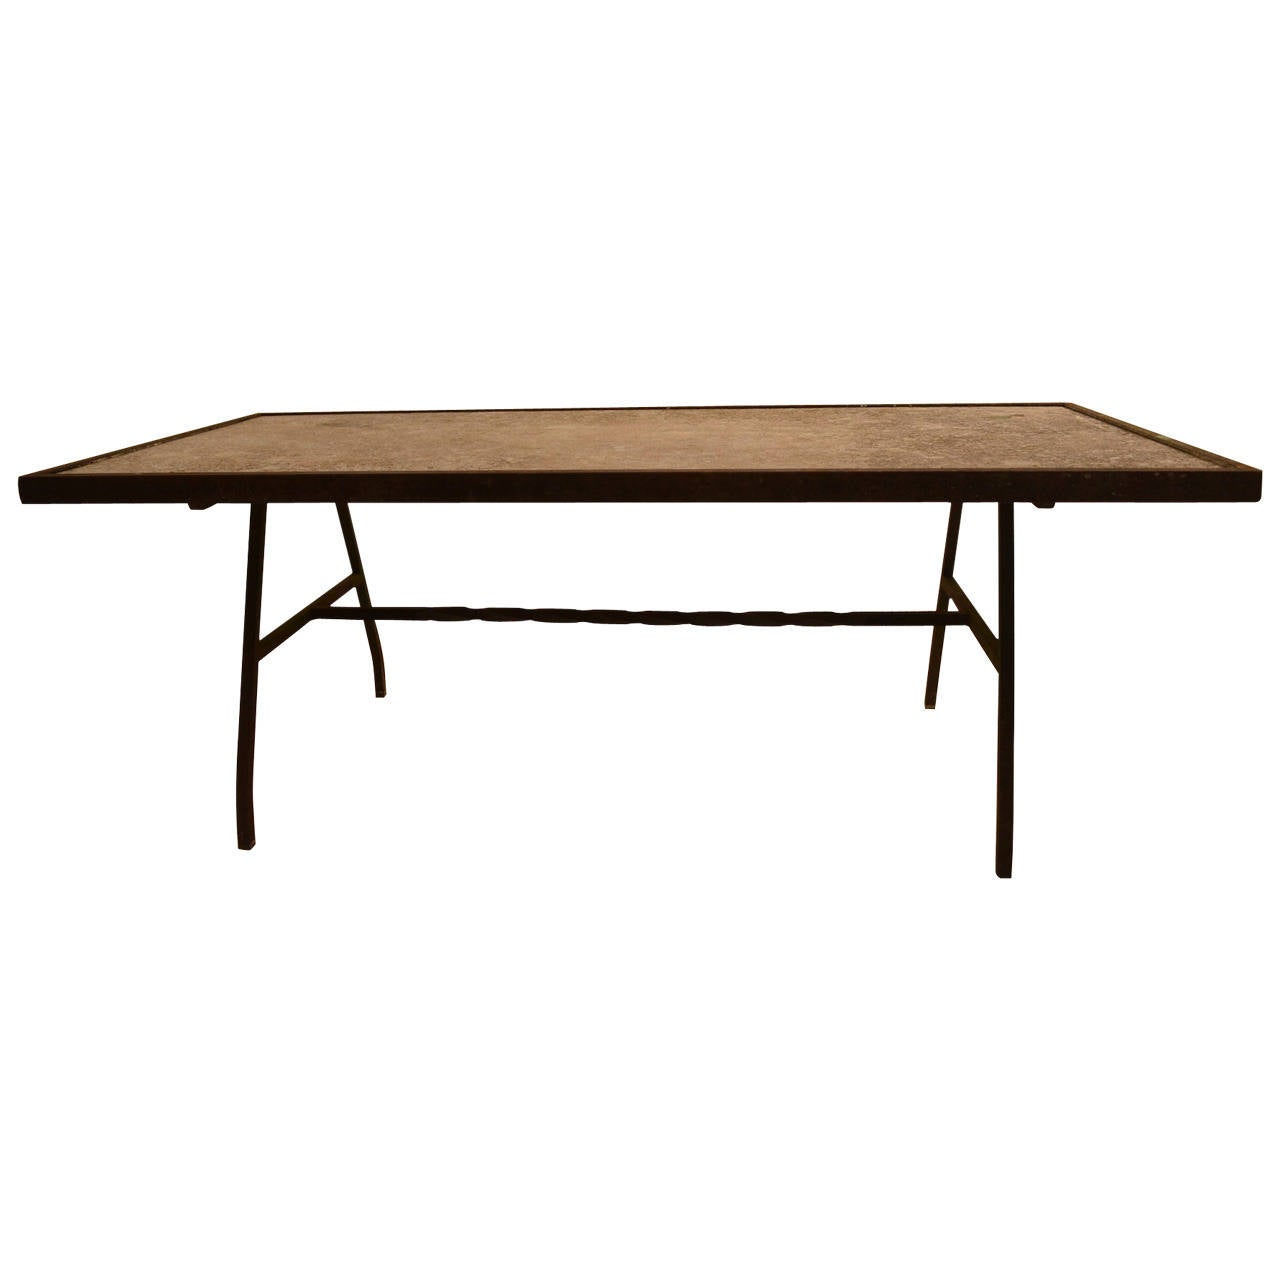 Stone top wrought iron base coffee table at 1stdibs Stone top coffee table